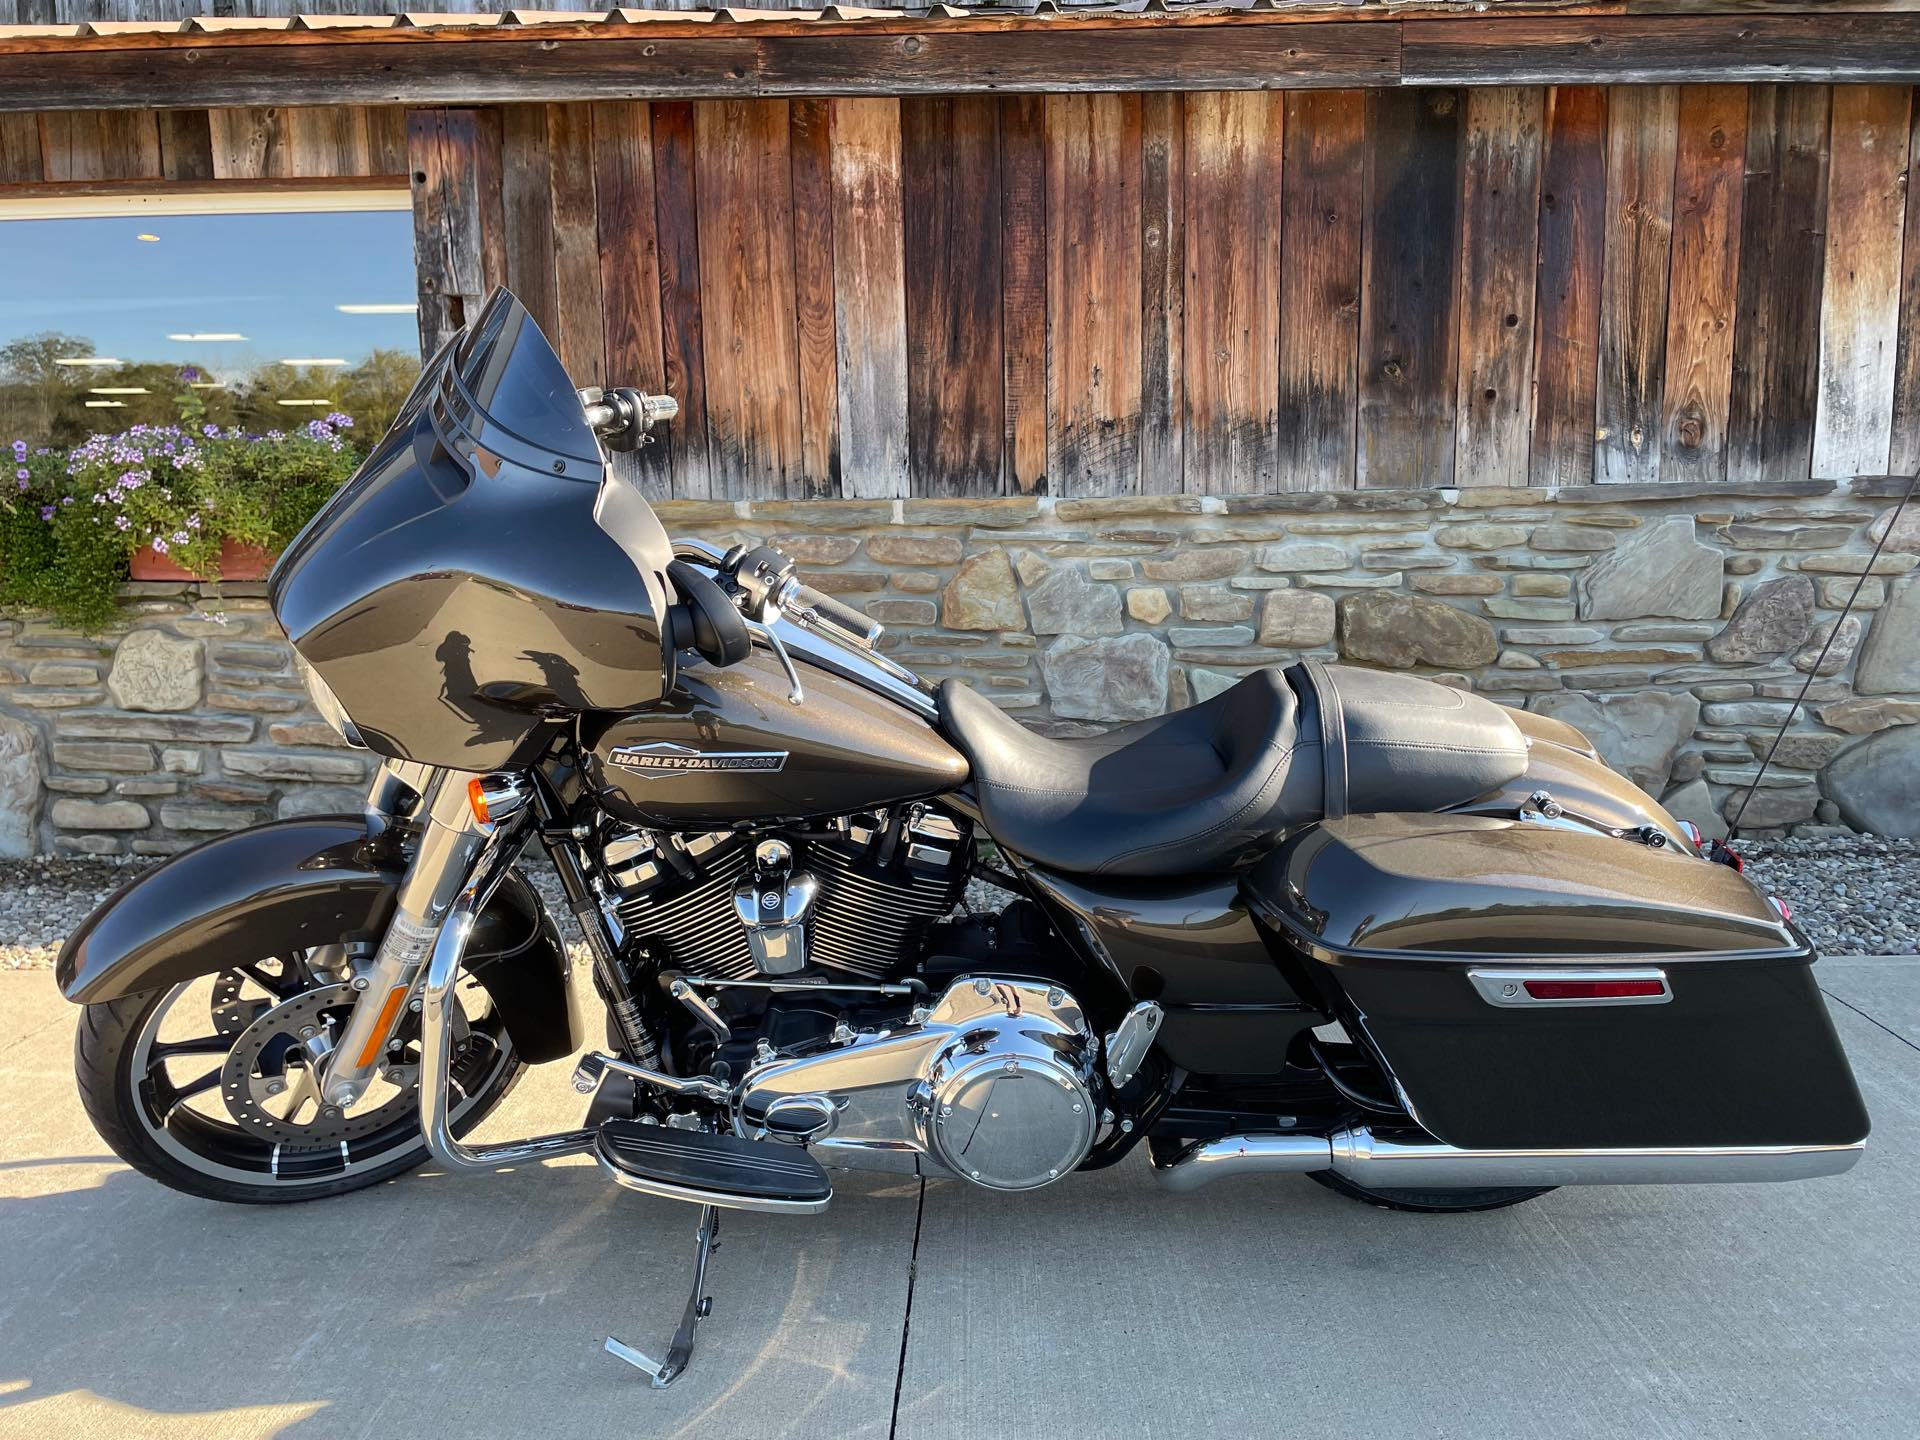 2021 Harley-Davidson Grand American Touring Street Glide at Arkport Cycles